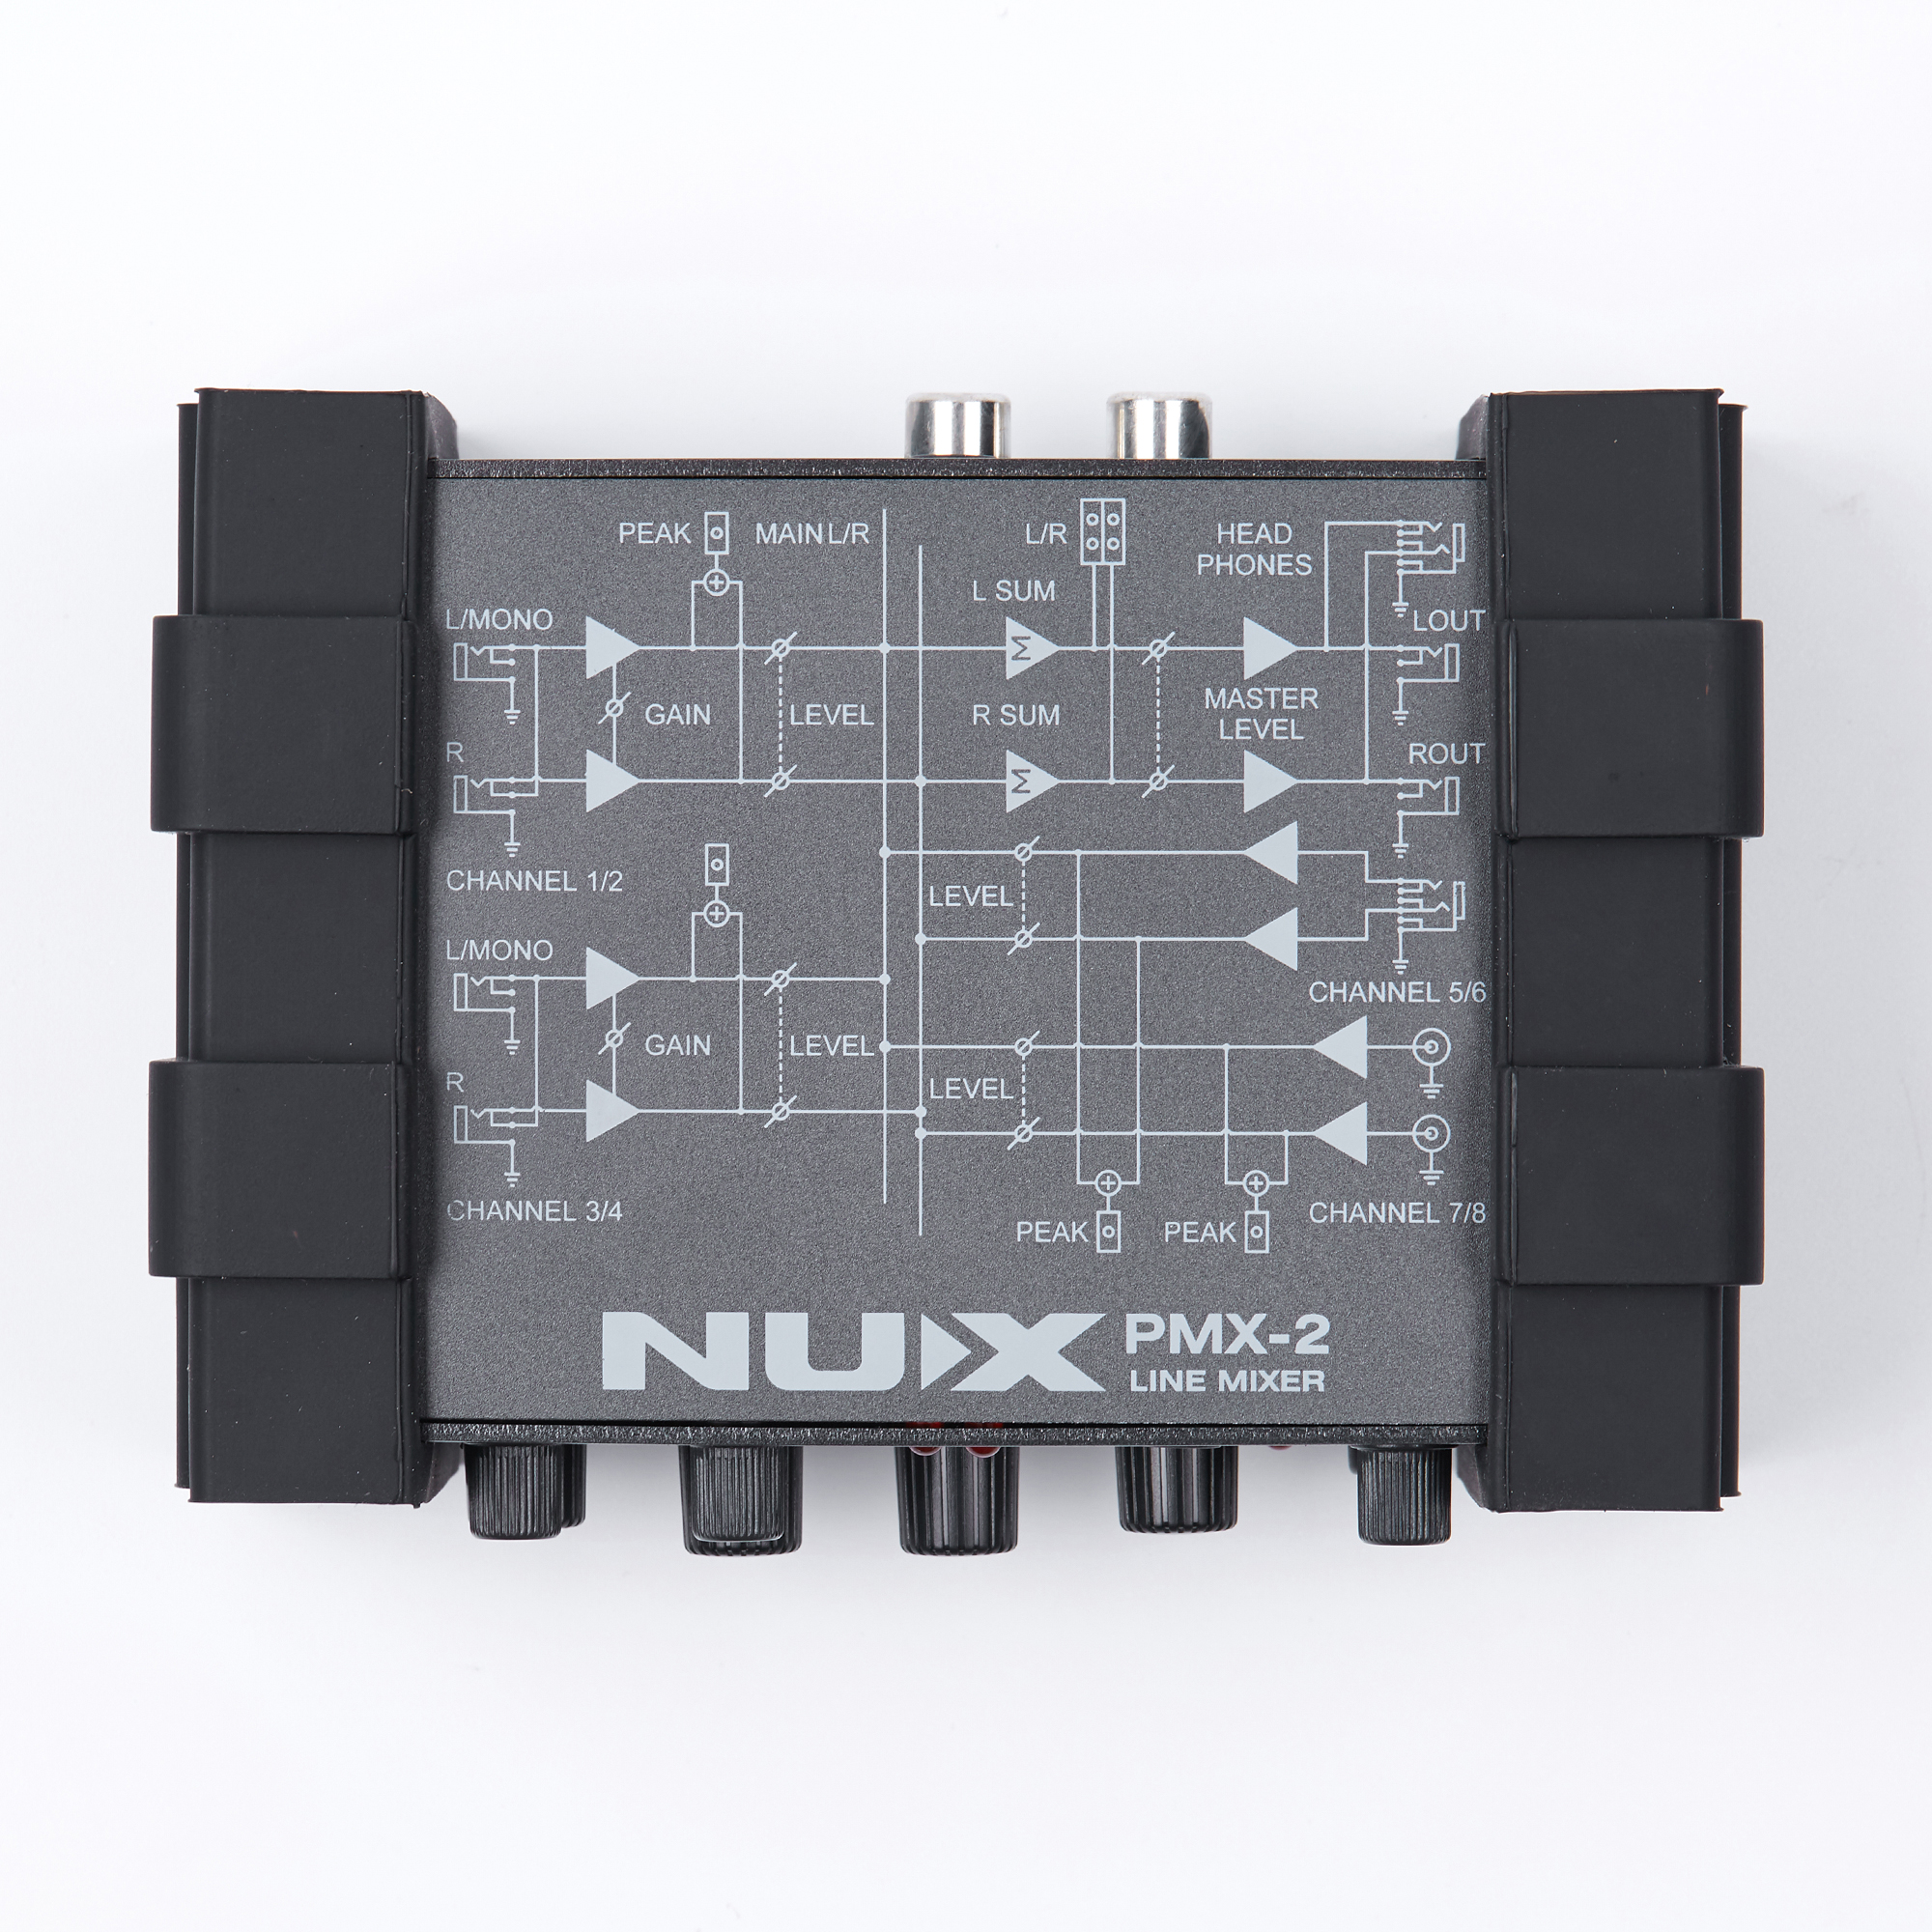 Gain Control 8 Inputs and 2 Outputs NUX PMX-2 Multi-Channel Mini Mixer 30 Musical Instruments Accessories for Guitar Bass Player cms 34 5 фигурка маленькая фея девочка pavone 782882